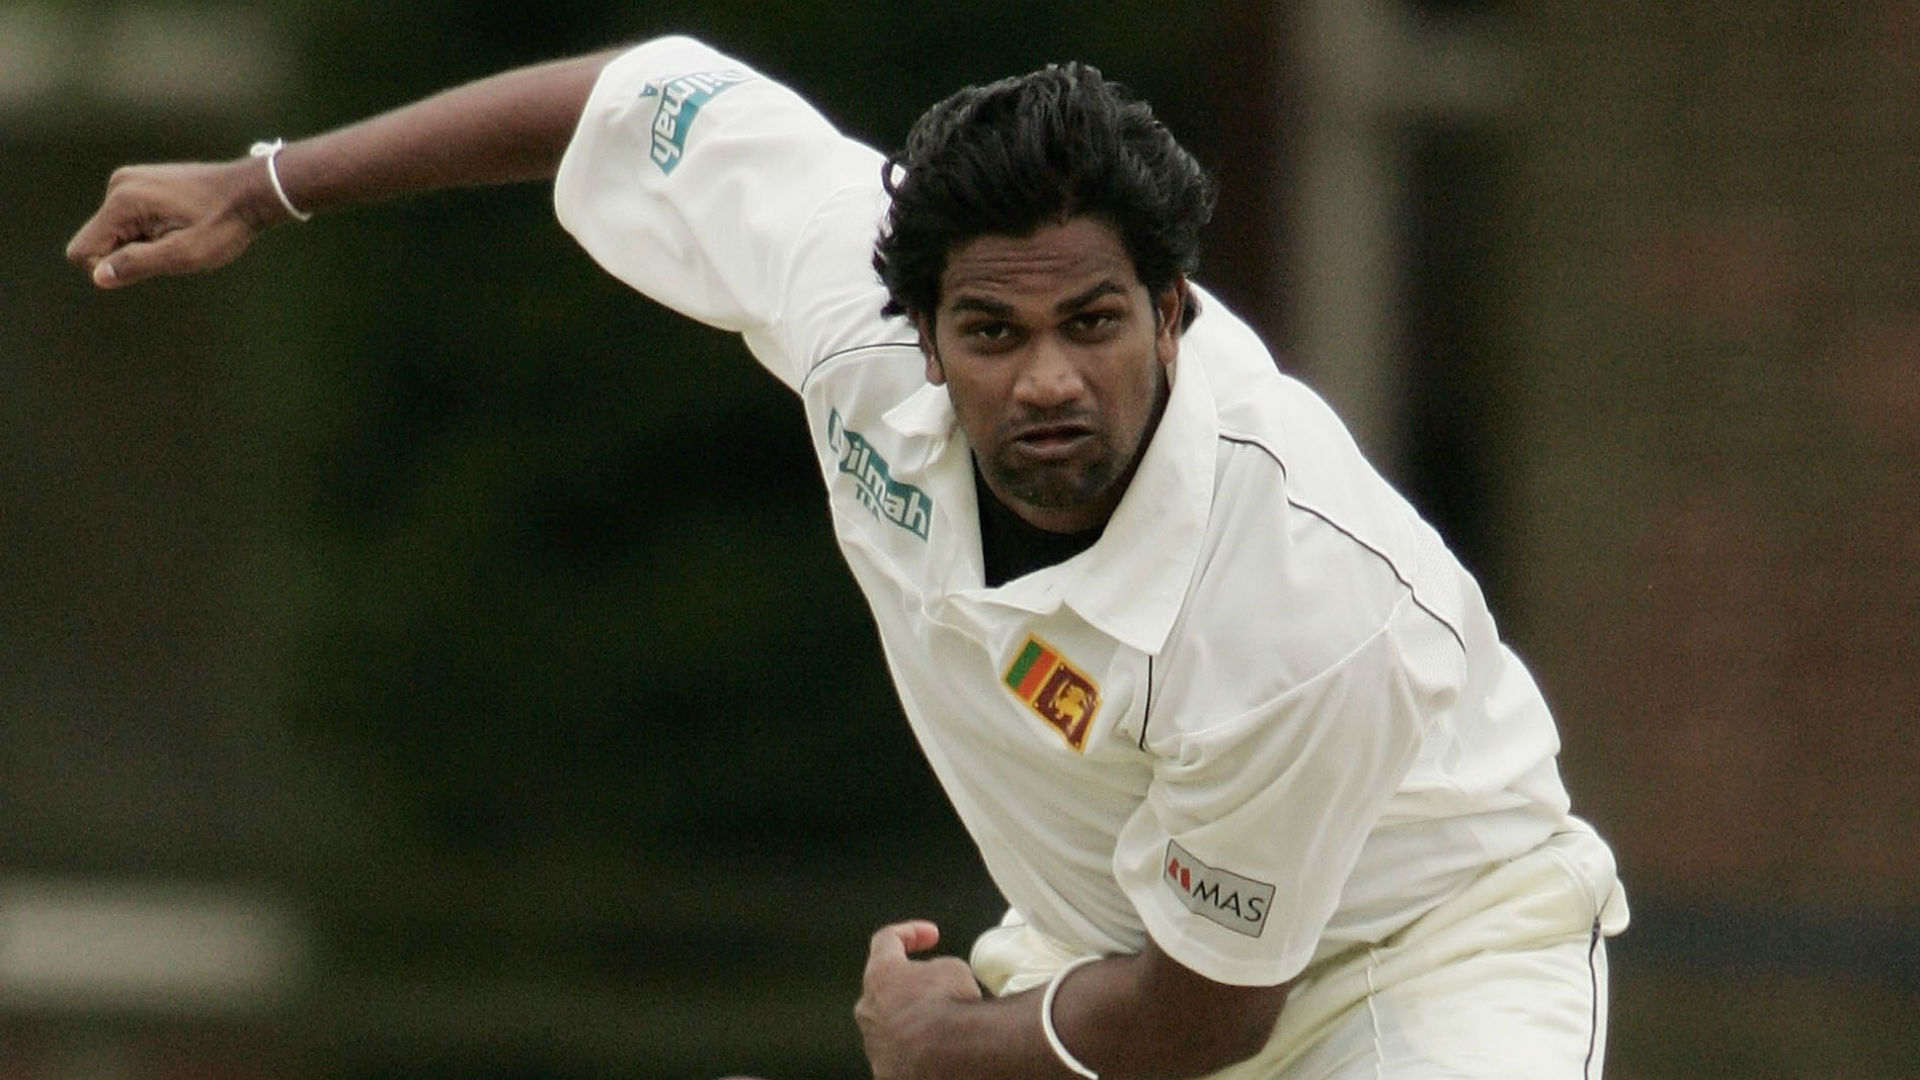 Former Sri Lanka bowler Zoysa banned for six years by ICC